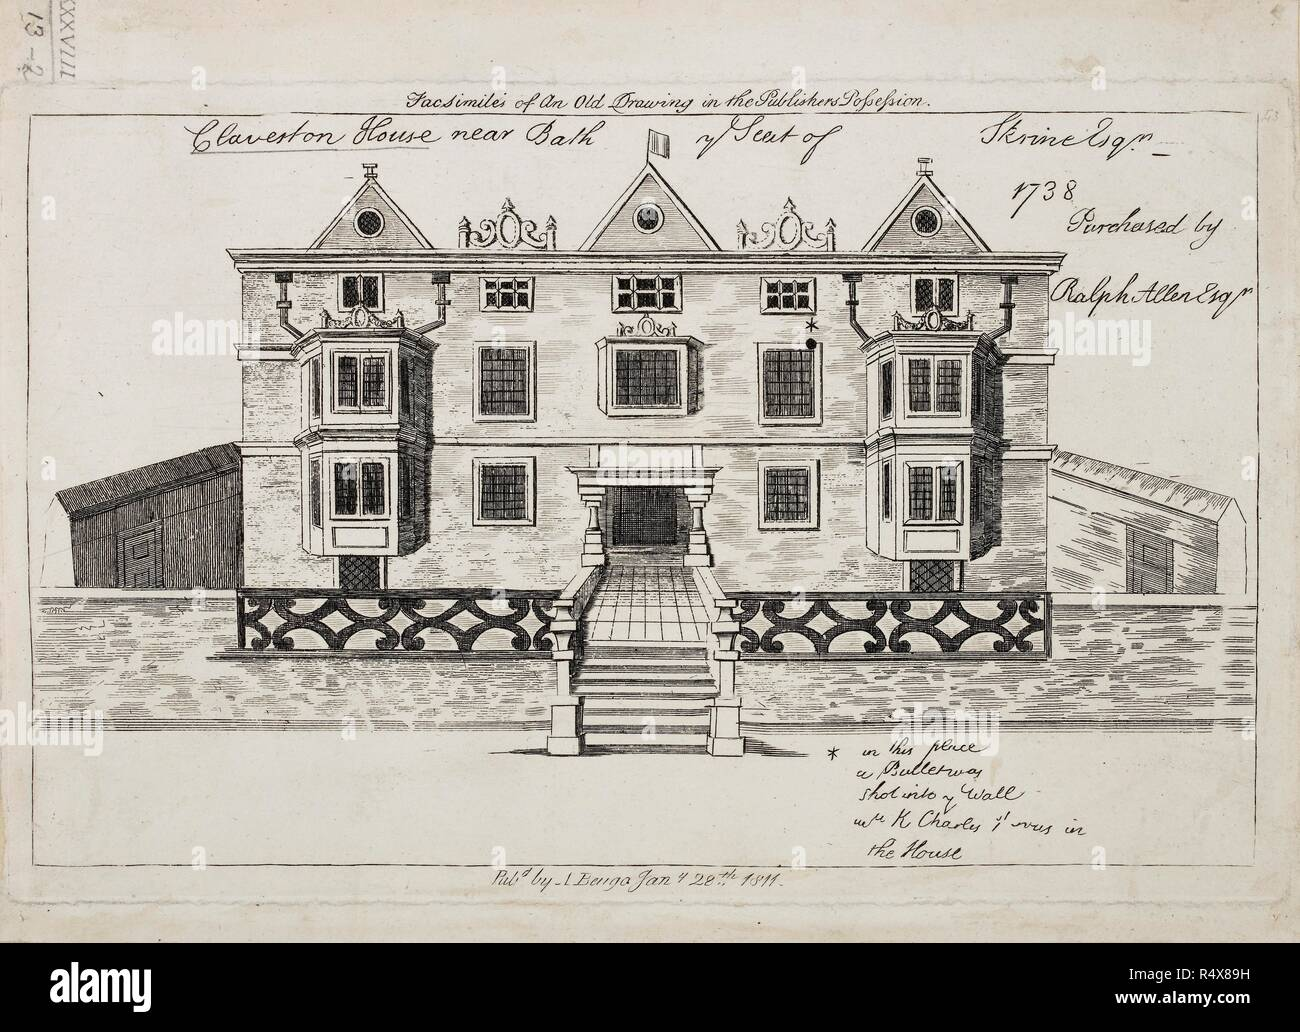 View of Claverton House near Bath. A stately home in Jacobean style.  Facade. Front elevation. View of Claverton House near Bath, 1738. View of Claverton House near Bath, 1738. A fac-simile of an old drawing. Source: Maps.K.Top.38.13-2. - Stock Image